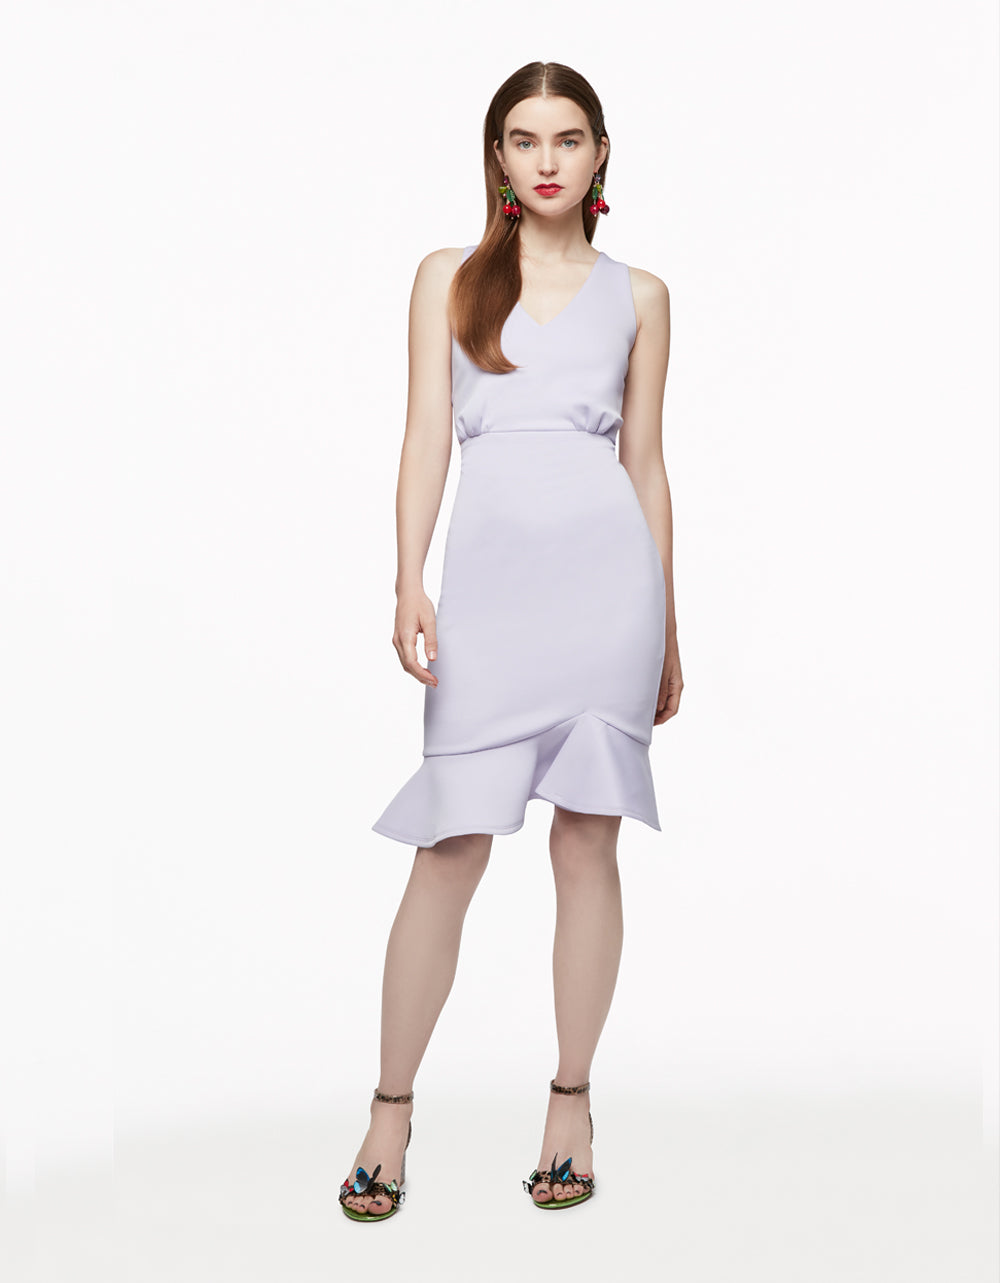 DOUBLE V RUFFLE DRESS LILAC - APPAREL - Betsey Johnson